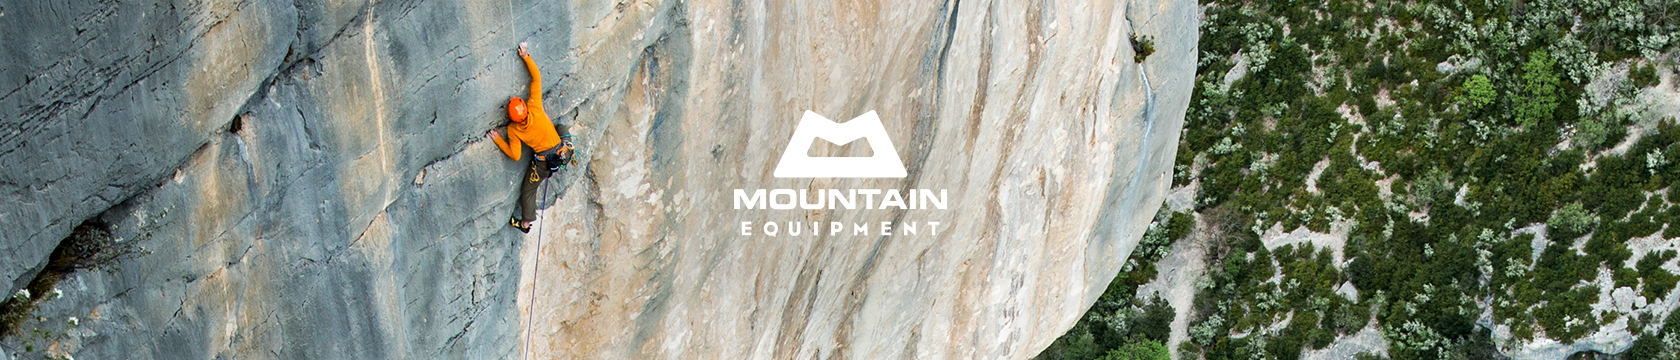 Man climbing wearing Mountain Equipment gear.